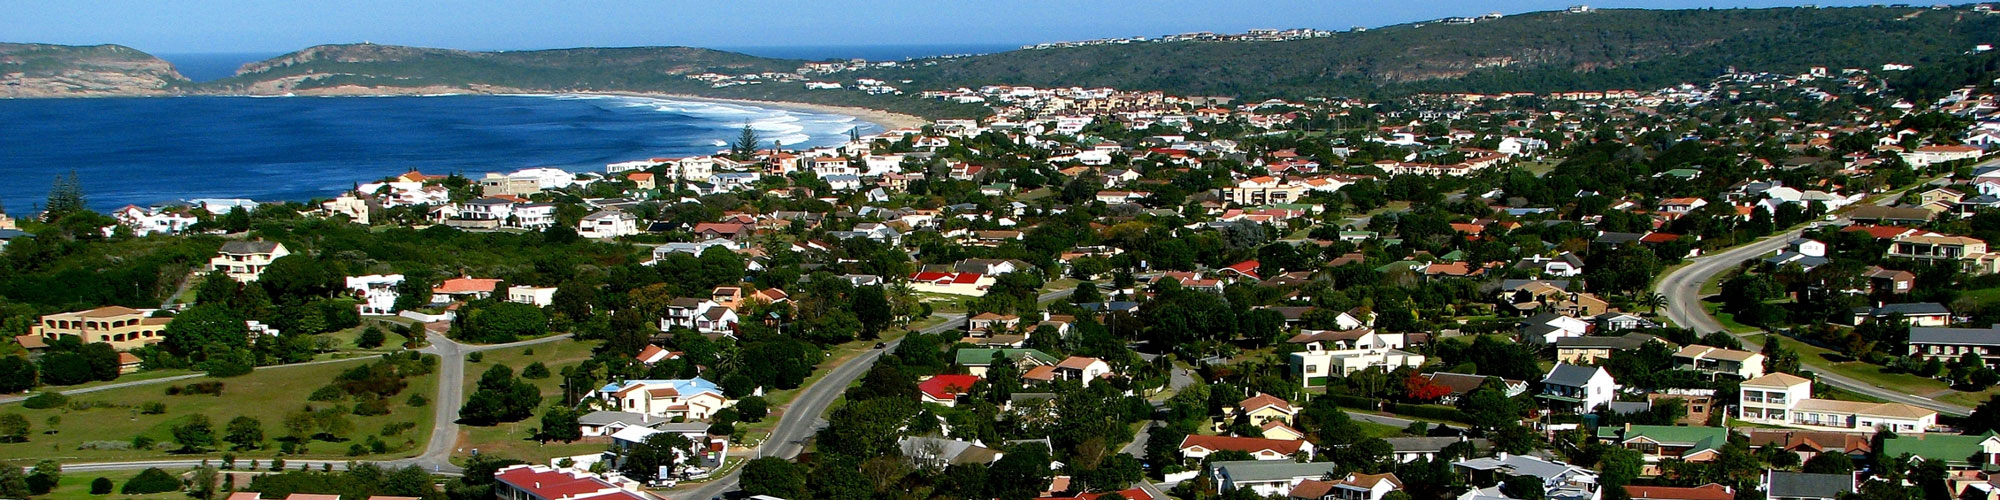 Rehab in Plett, Rehab in Plettenberg Bay, Addiction, Eating Disorders South Africa